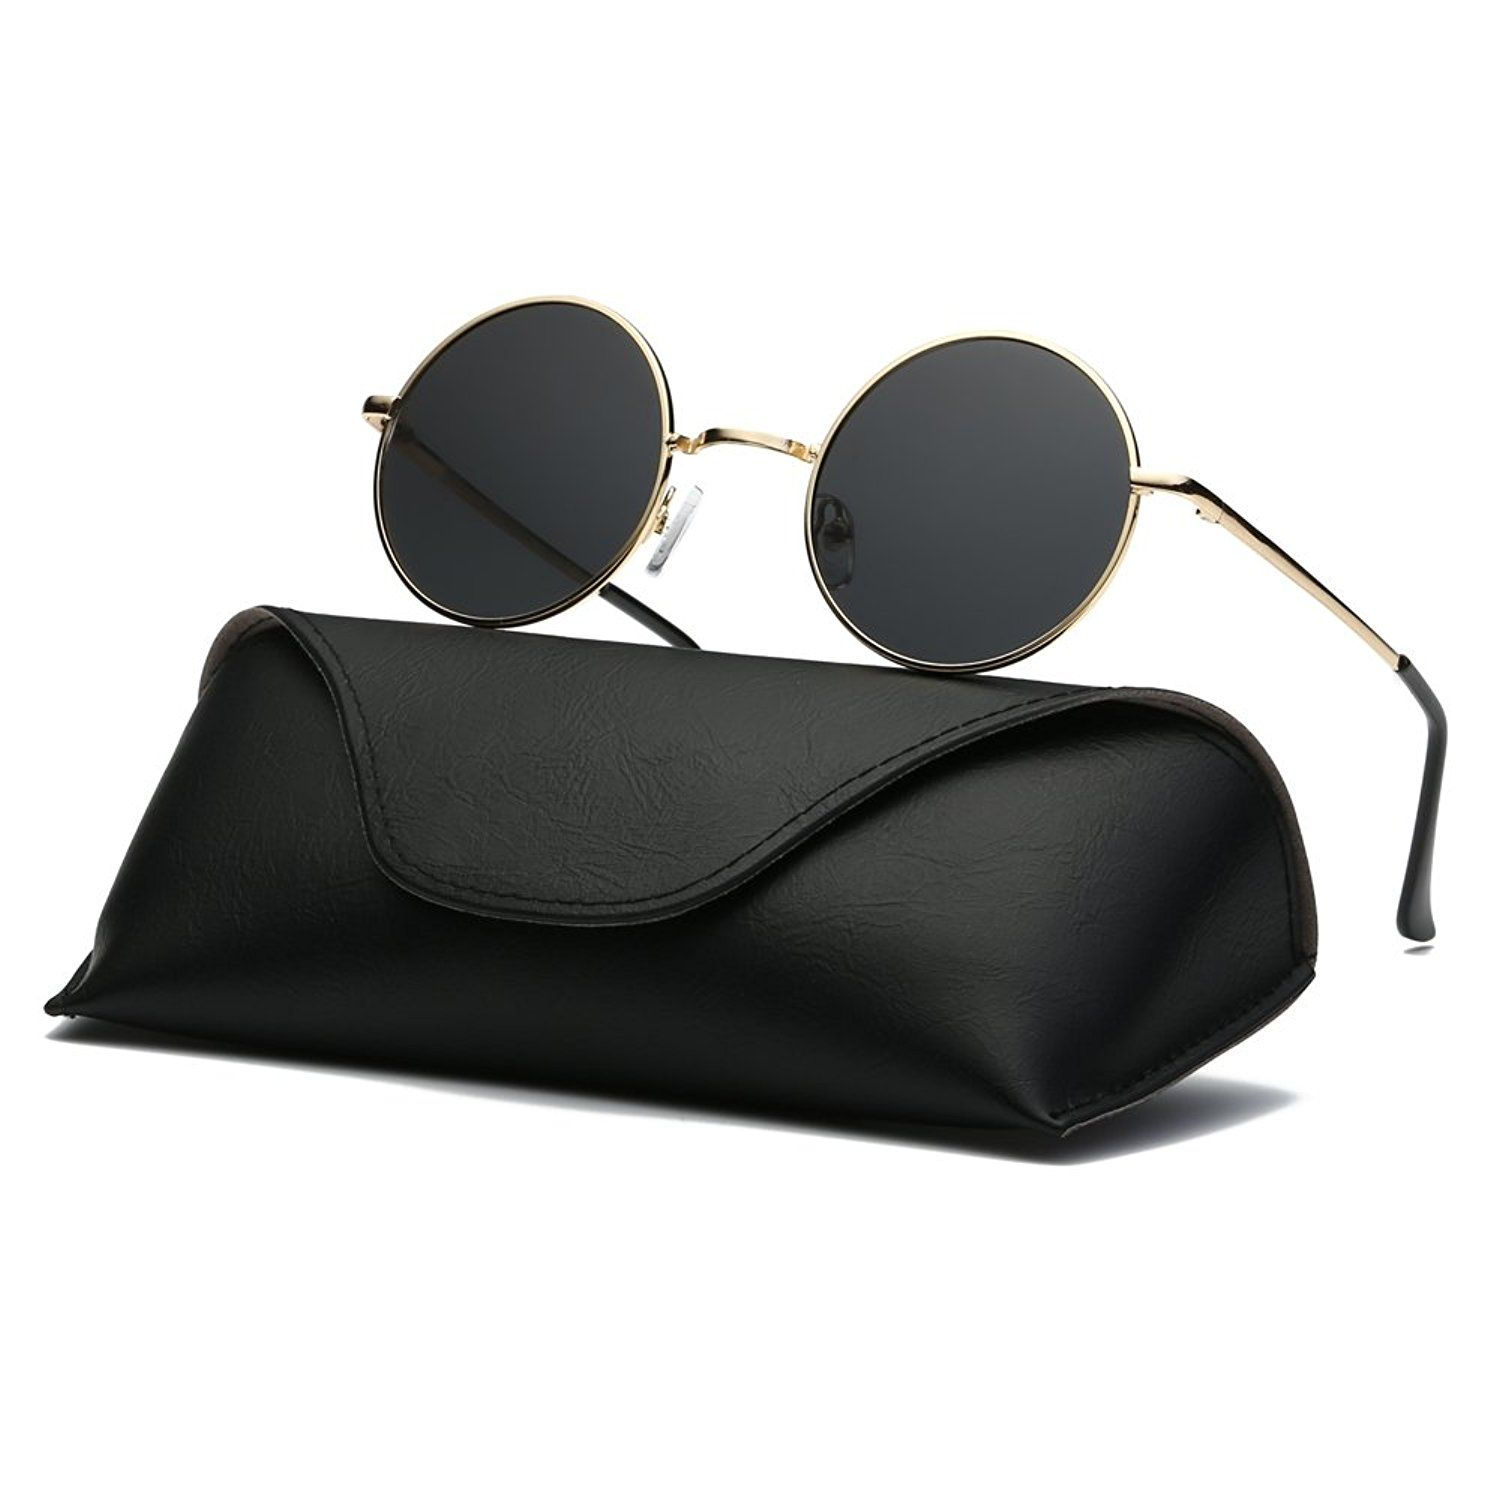 5437910e0f Ray Parker Fashion Classic Vintage UV Protection Round Mirrored Polarized  Lens Sunglasses for Men RP8024